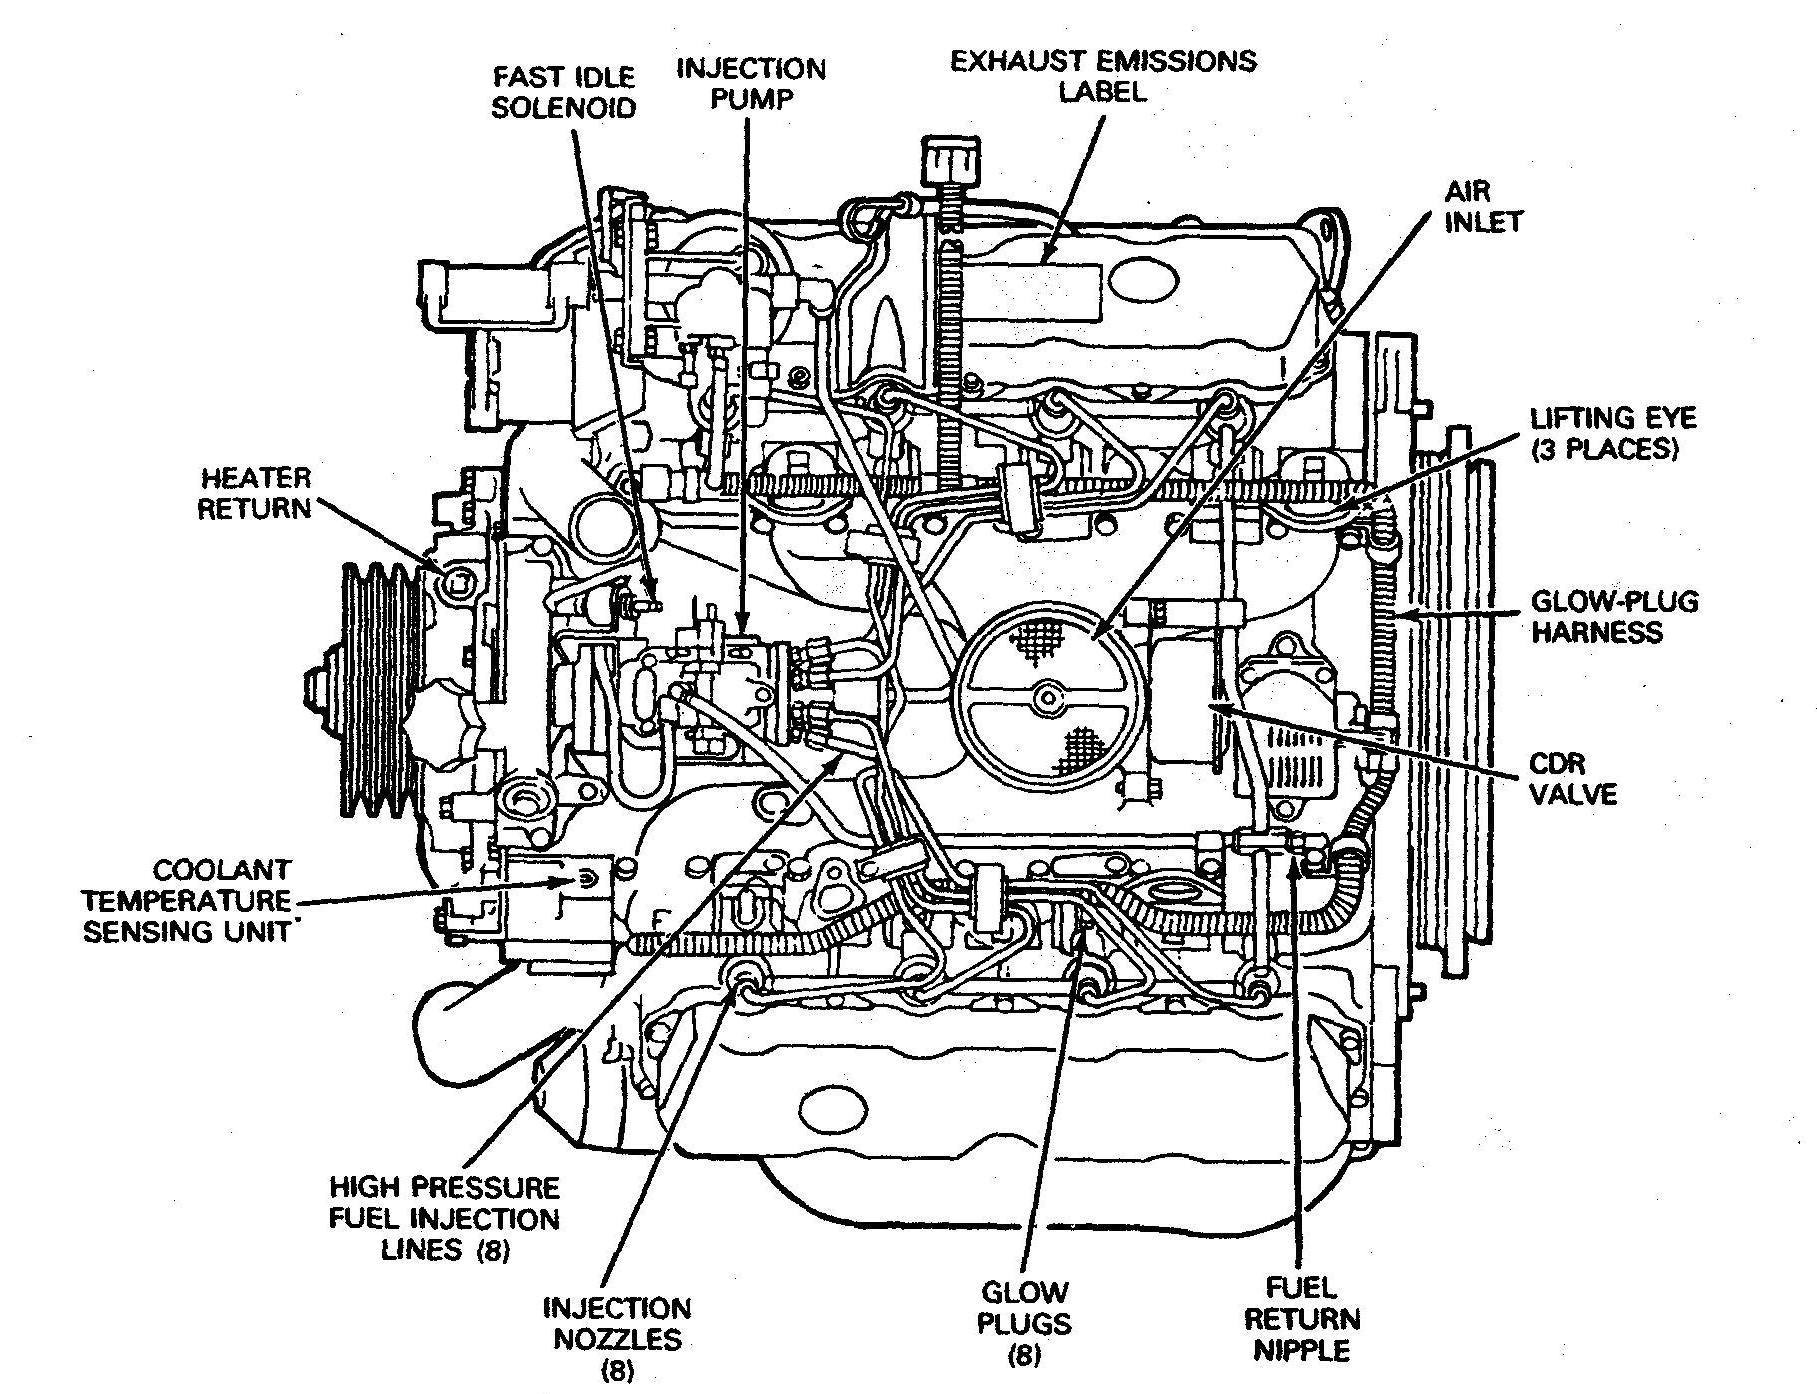 Diesel Engine Block Diagram Ford F350 Fuse Box 1996 F 350 Gas Automotive Wiring Diagrams Of